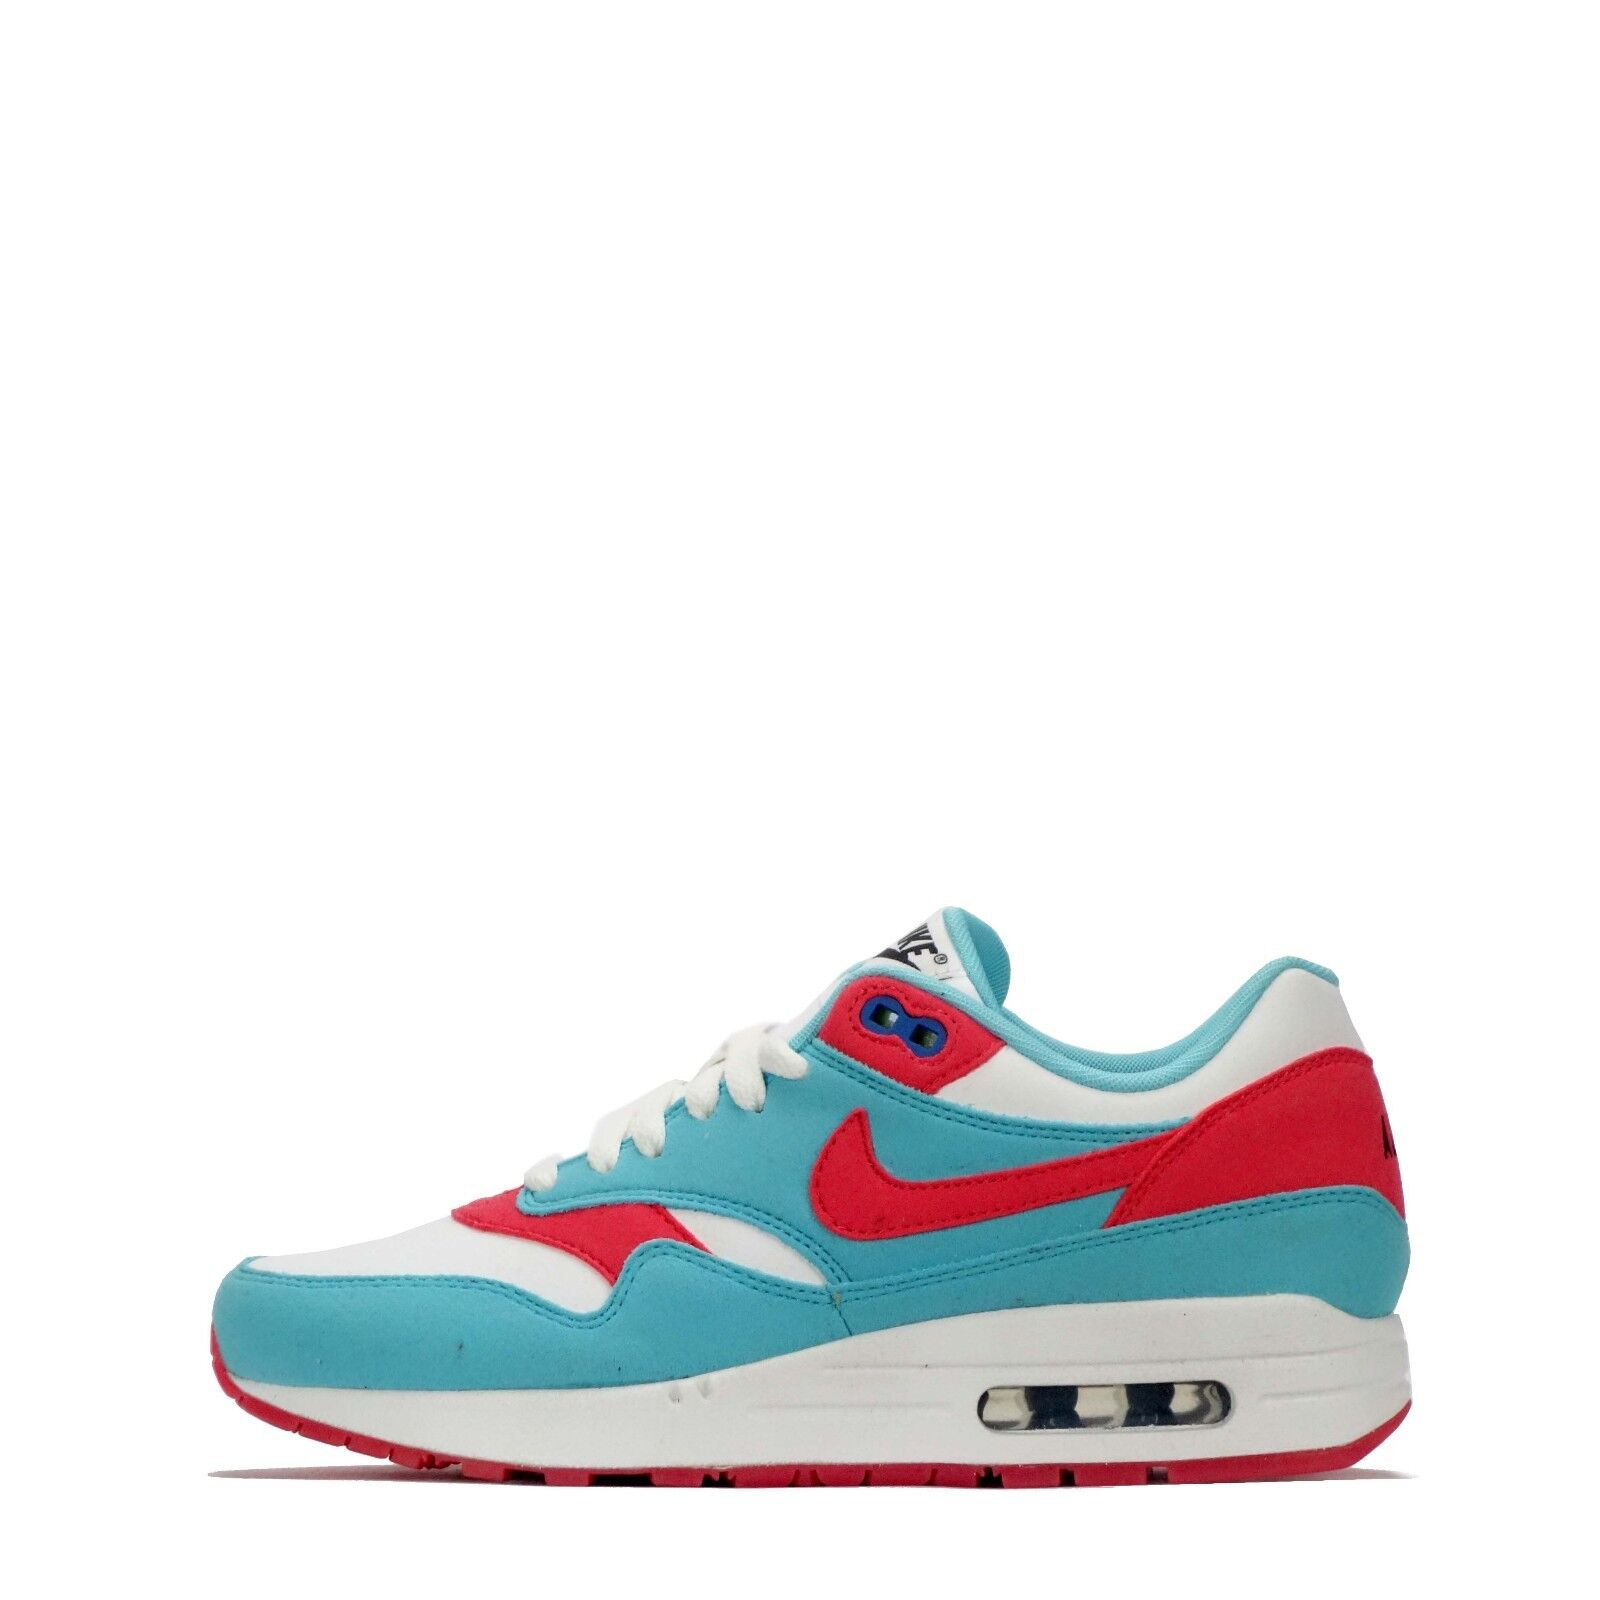 Nike ID Air Max 1 Women's Low Top Casual Trainers Shoes in White/Green